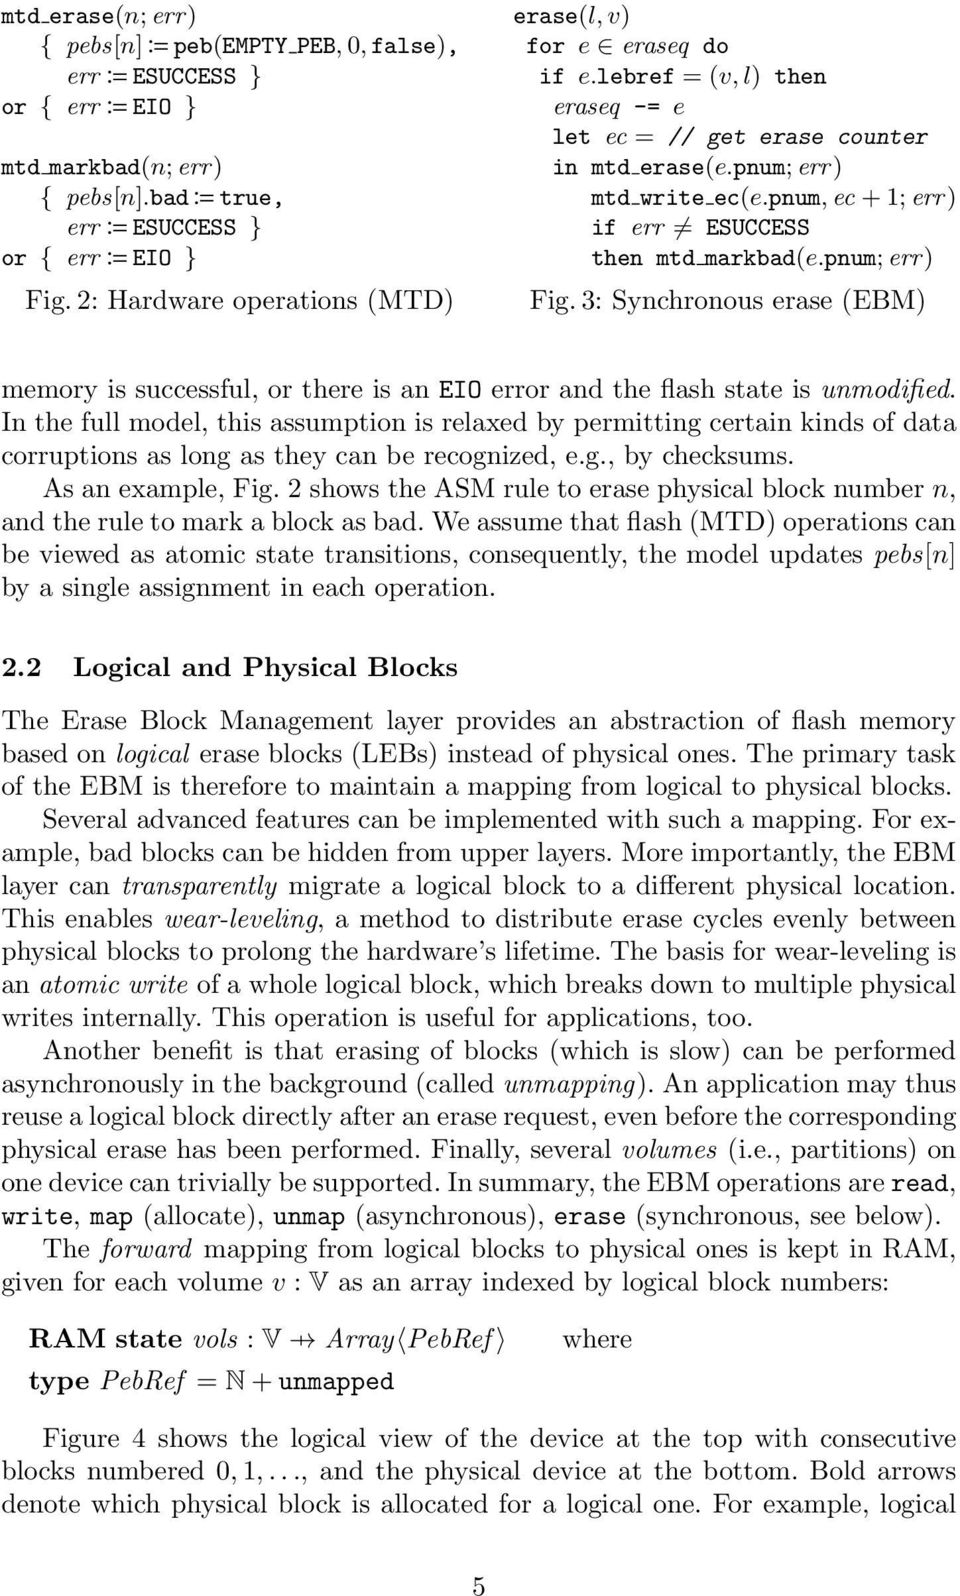 pnum, ec + 1; err) if err ESUCCESS then mtd markbad(e.pnum; err) Fig. 3: Synchronous erase (EBM) memory is successful, or there is an EIO error and the flash state is unmodified.